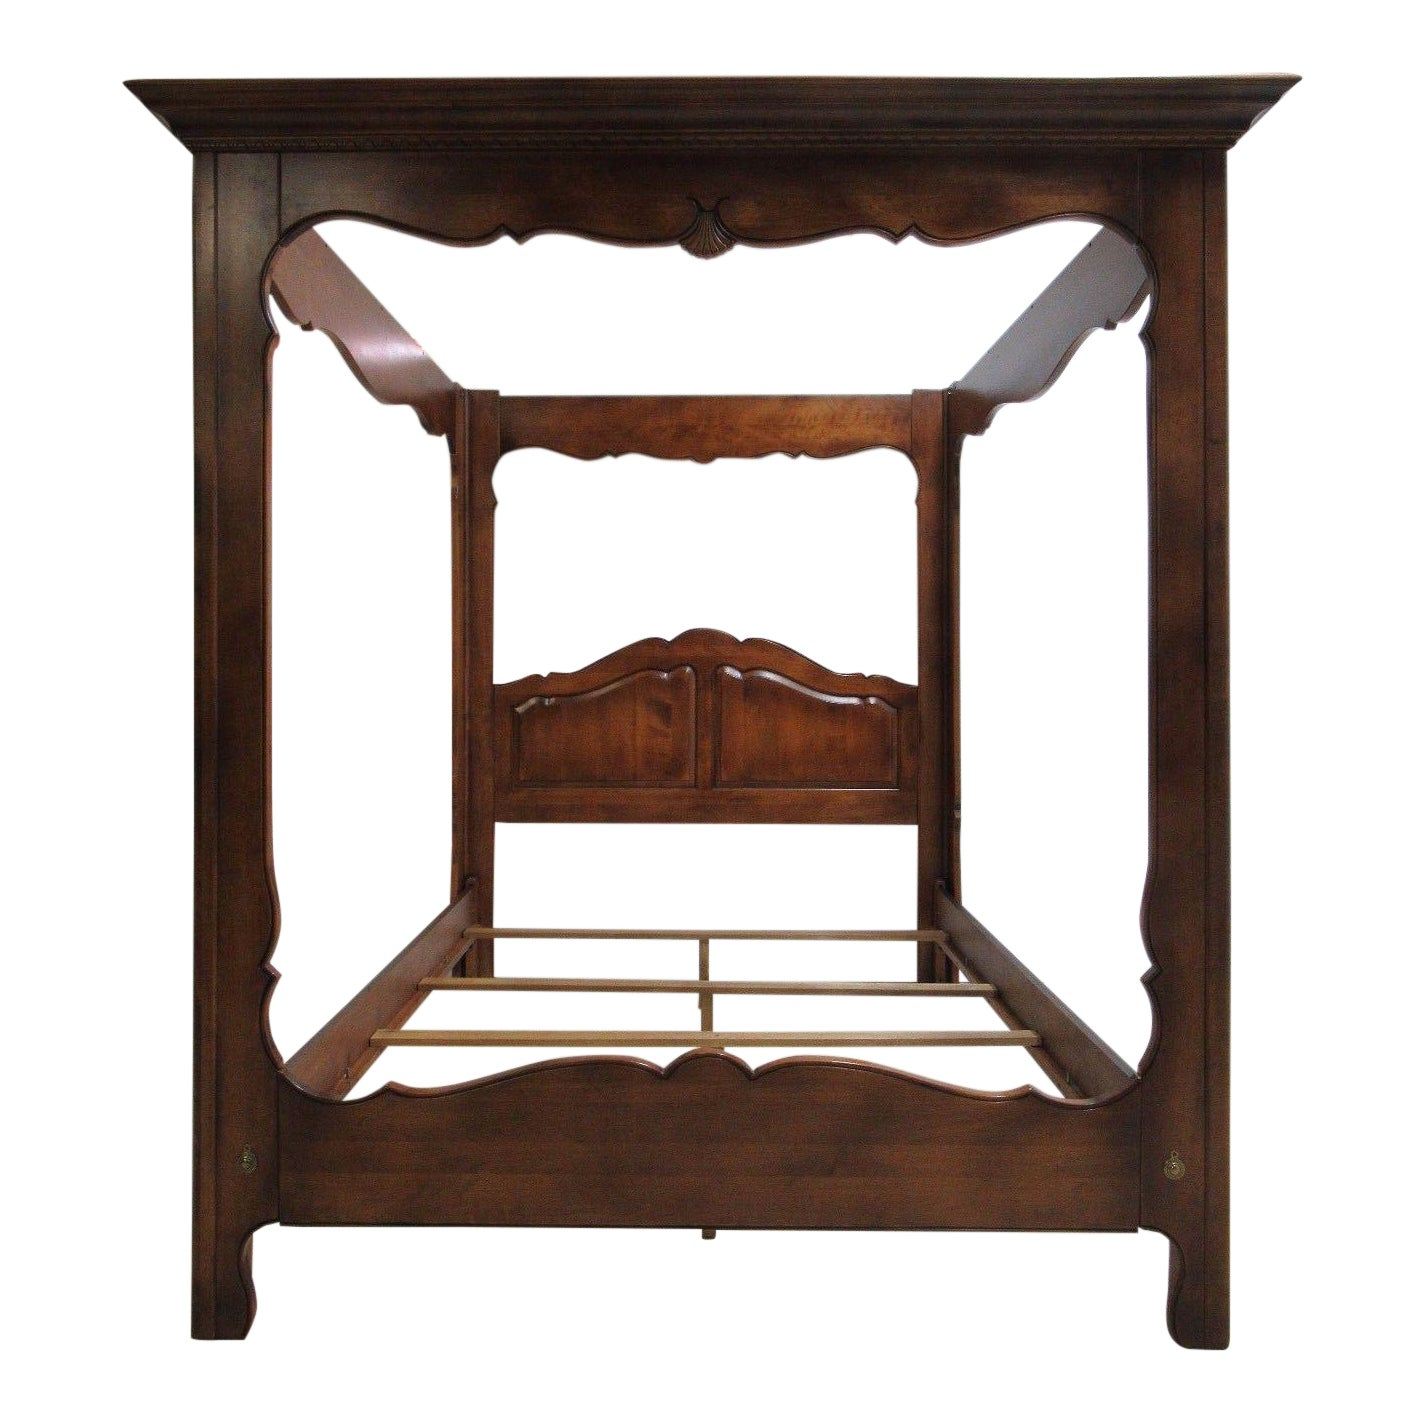 Ethan Allen French Country Coffee Table: Ethan Allen Country French Queen Size Canopy Bed